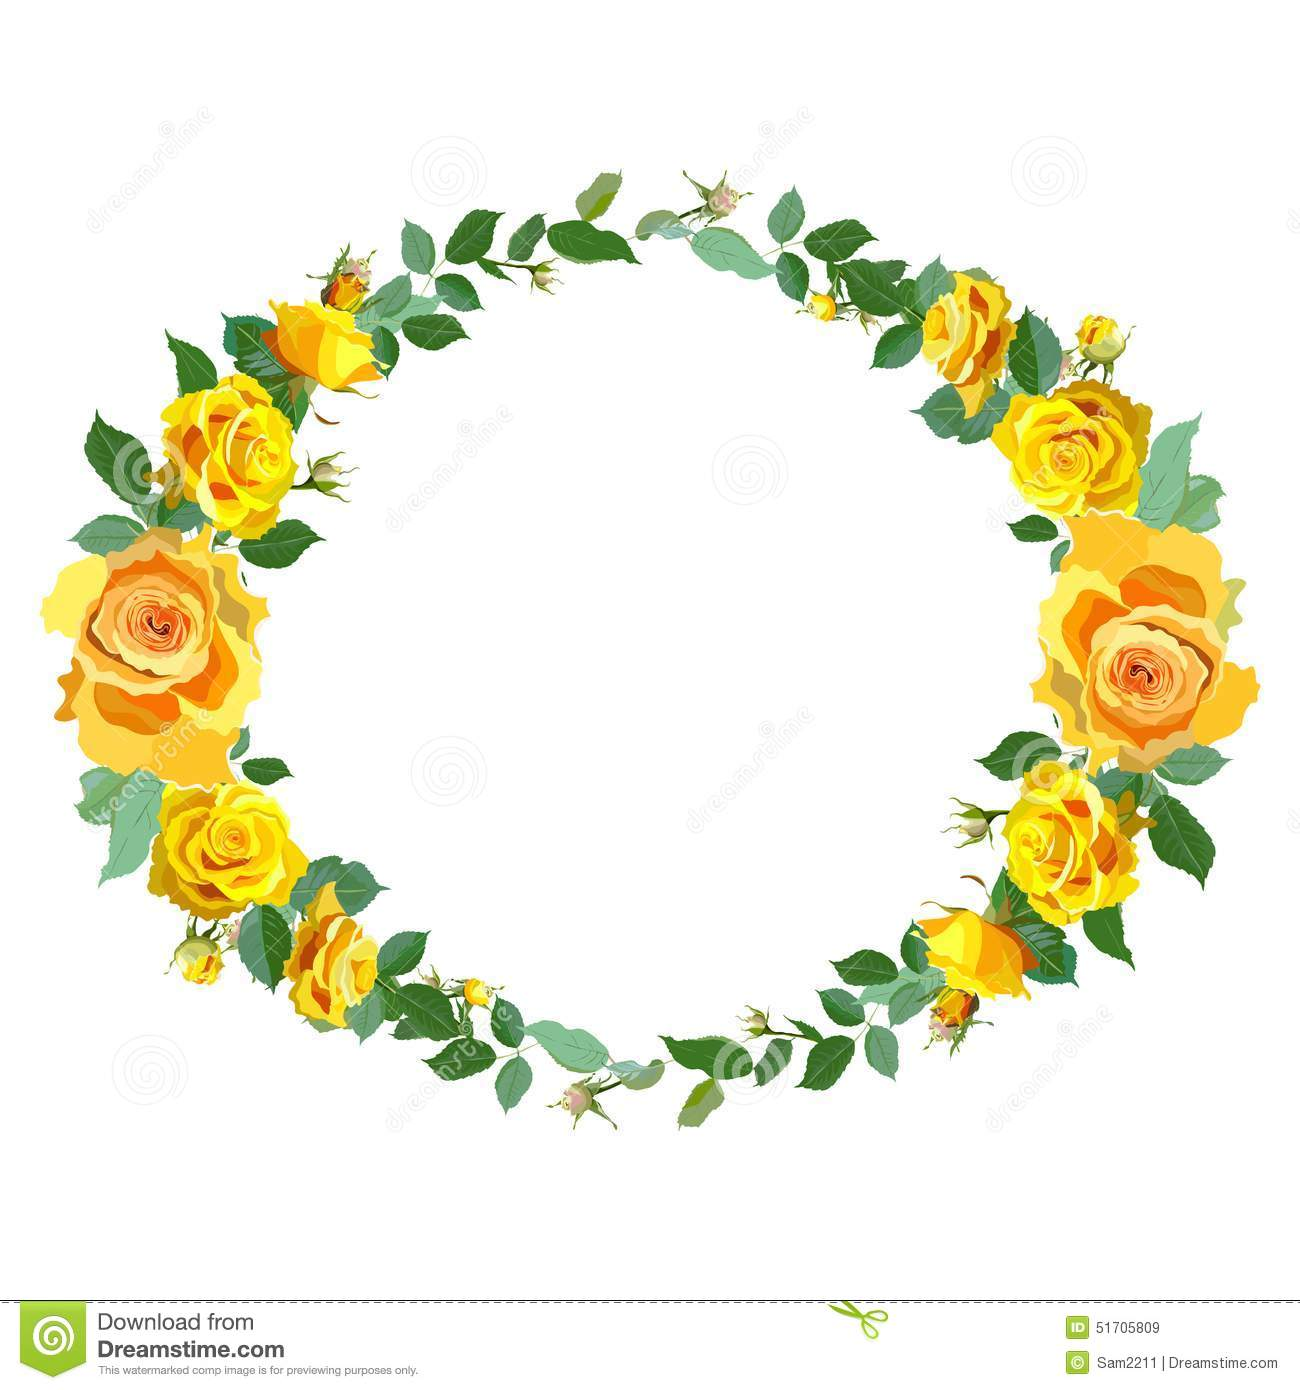 Wallpaper Of Yellow Rose: Wreath Background With Yellow Roses. Stock Vector